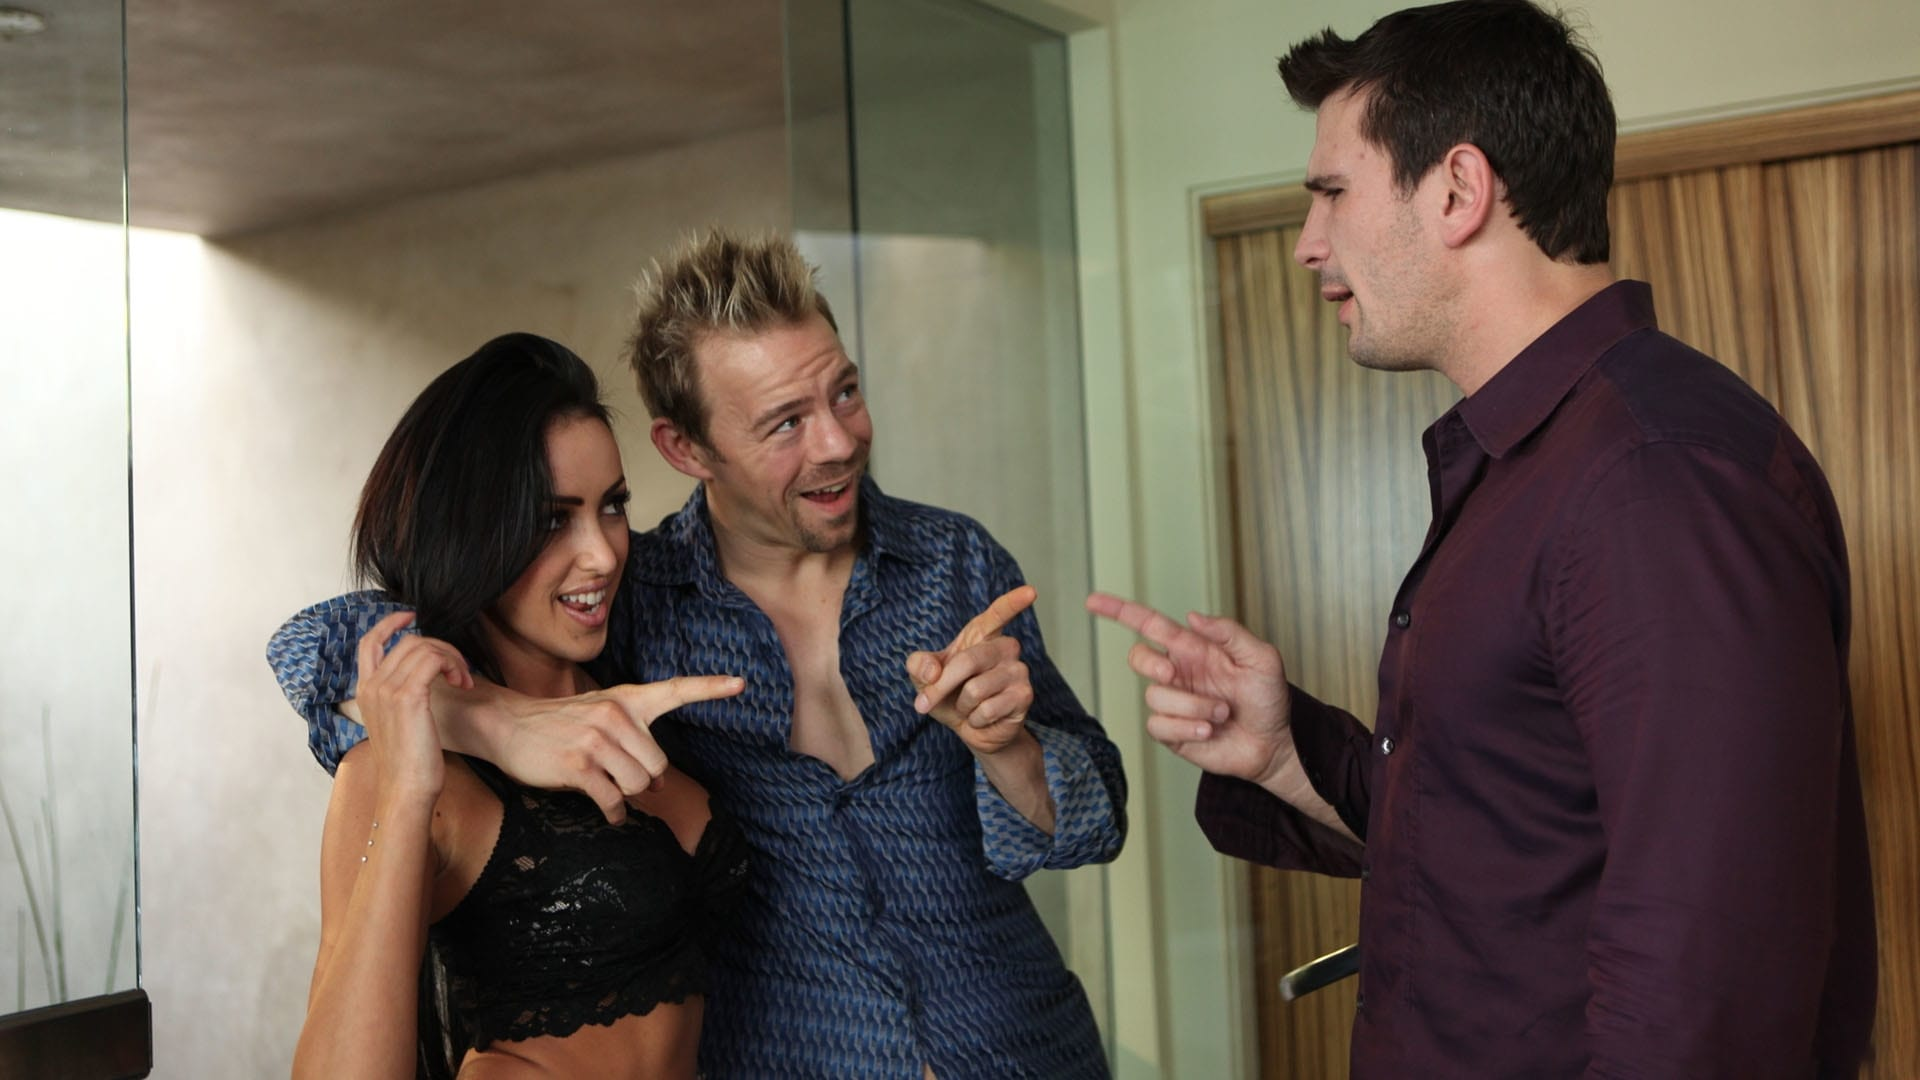 Callie cobra rocco reed time for change scene 4 - 1 part 2